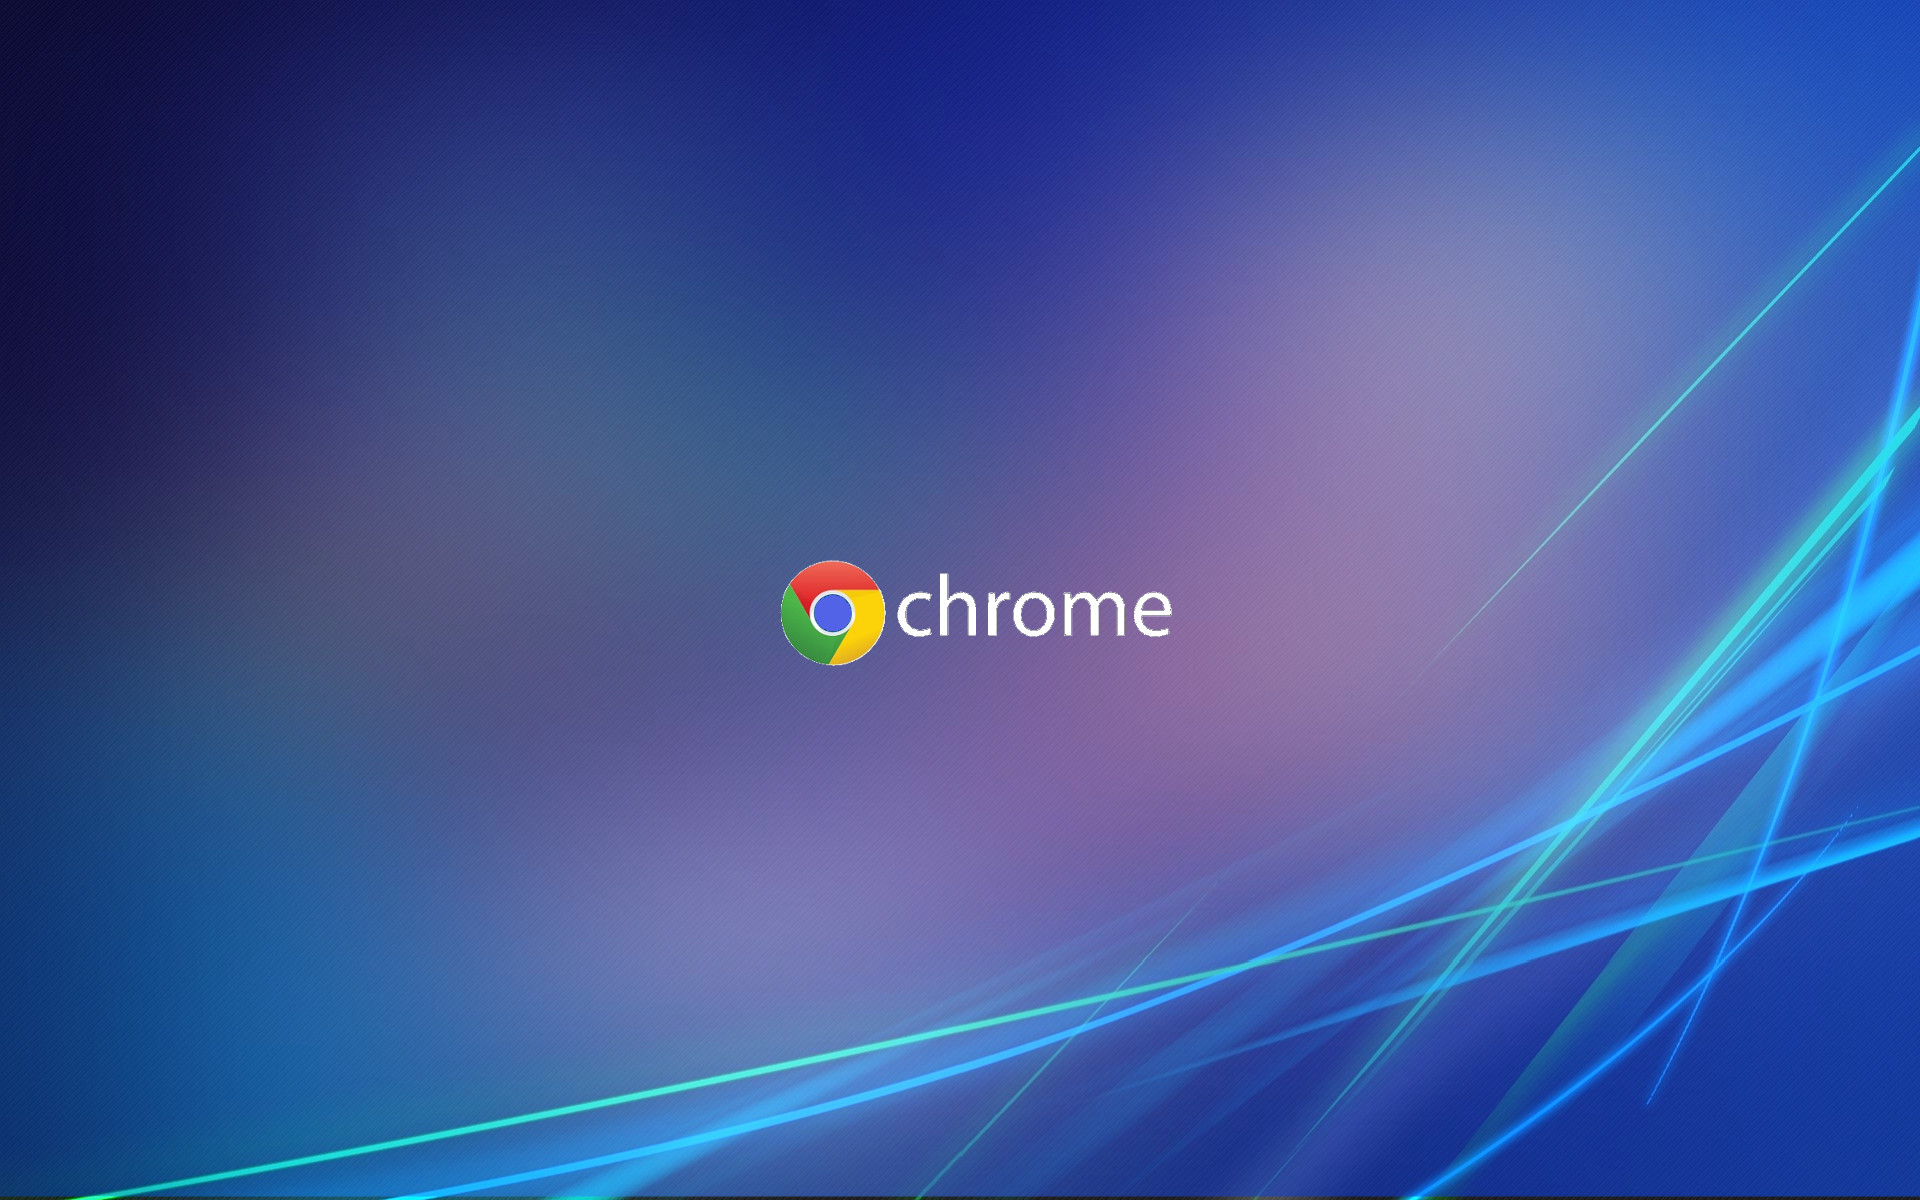 Get Chromebook Wallpapers Free and HD by the Thousands